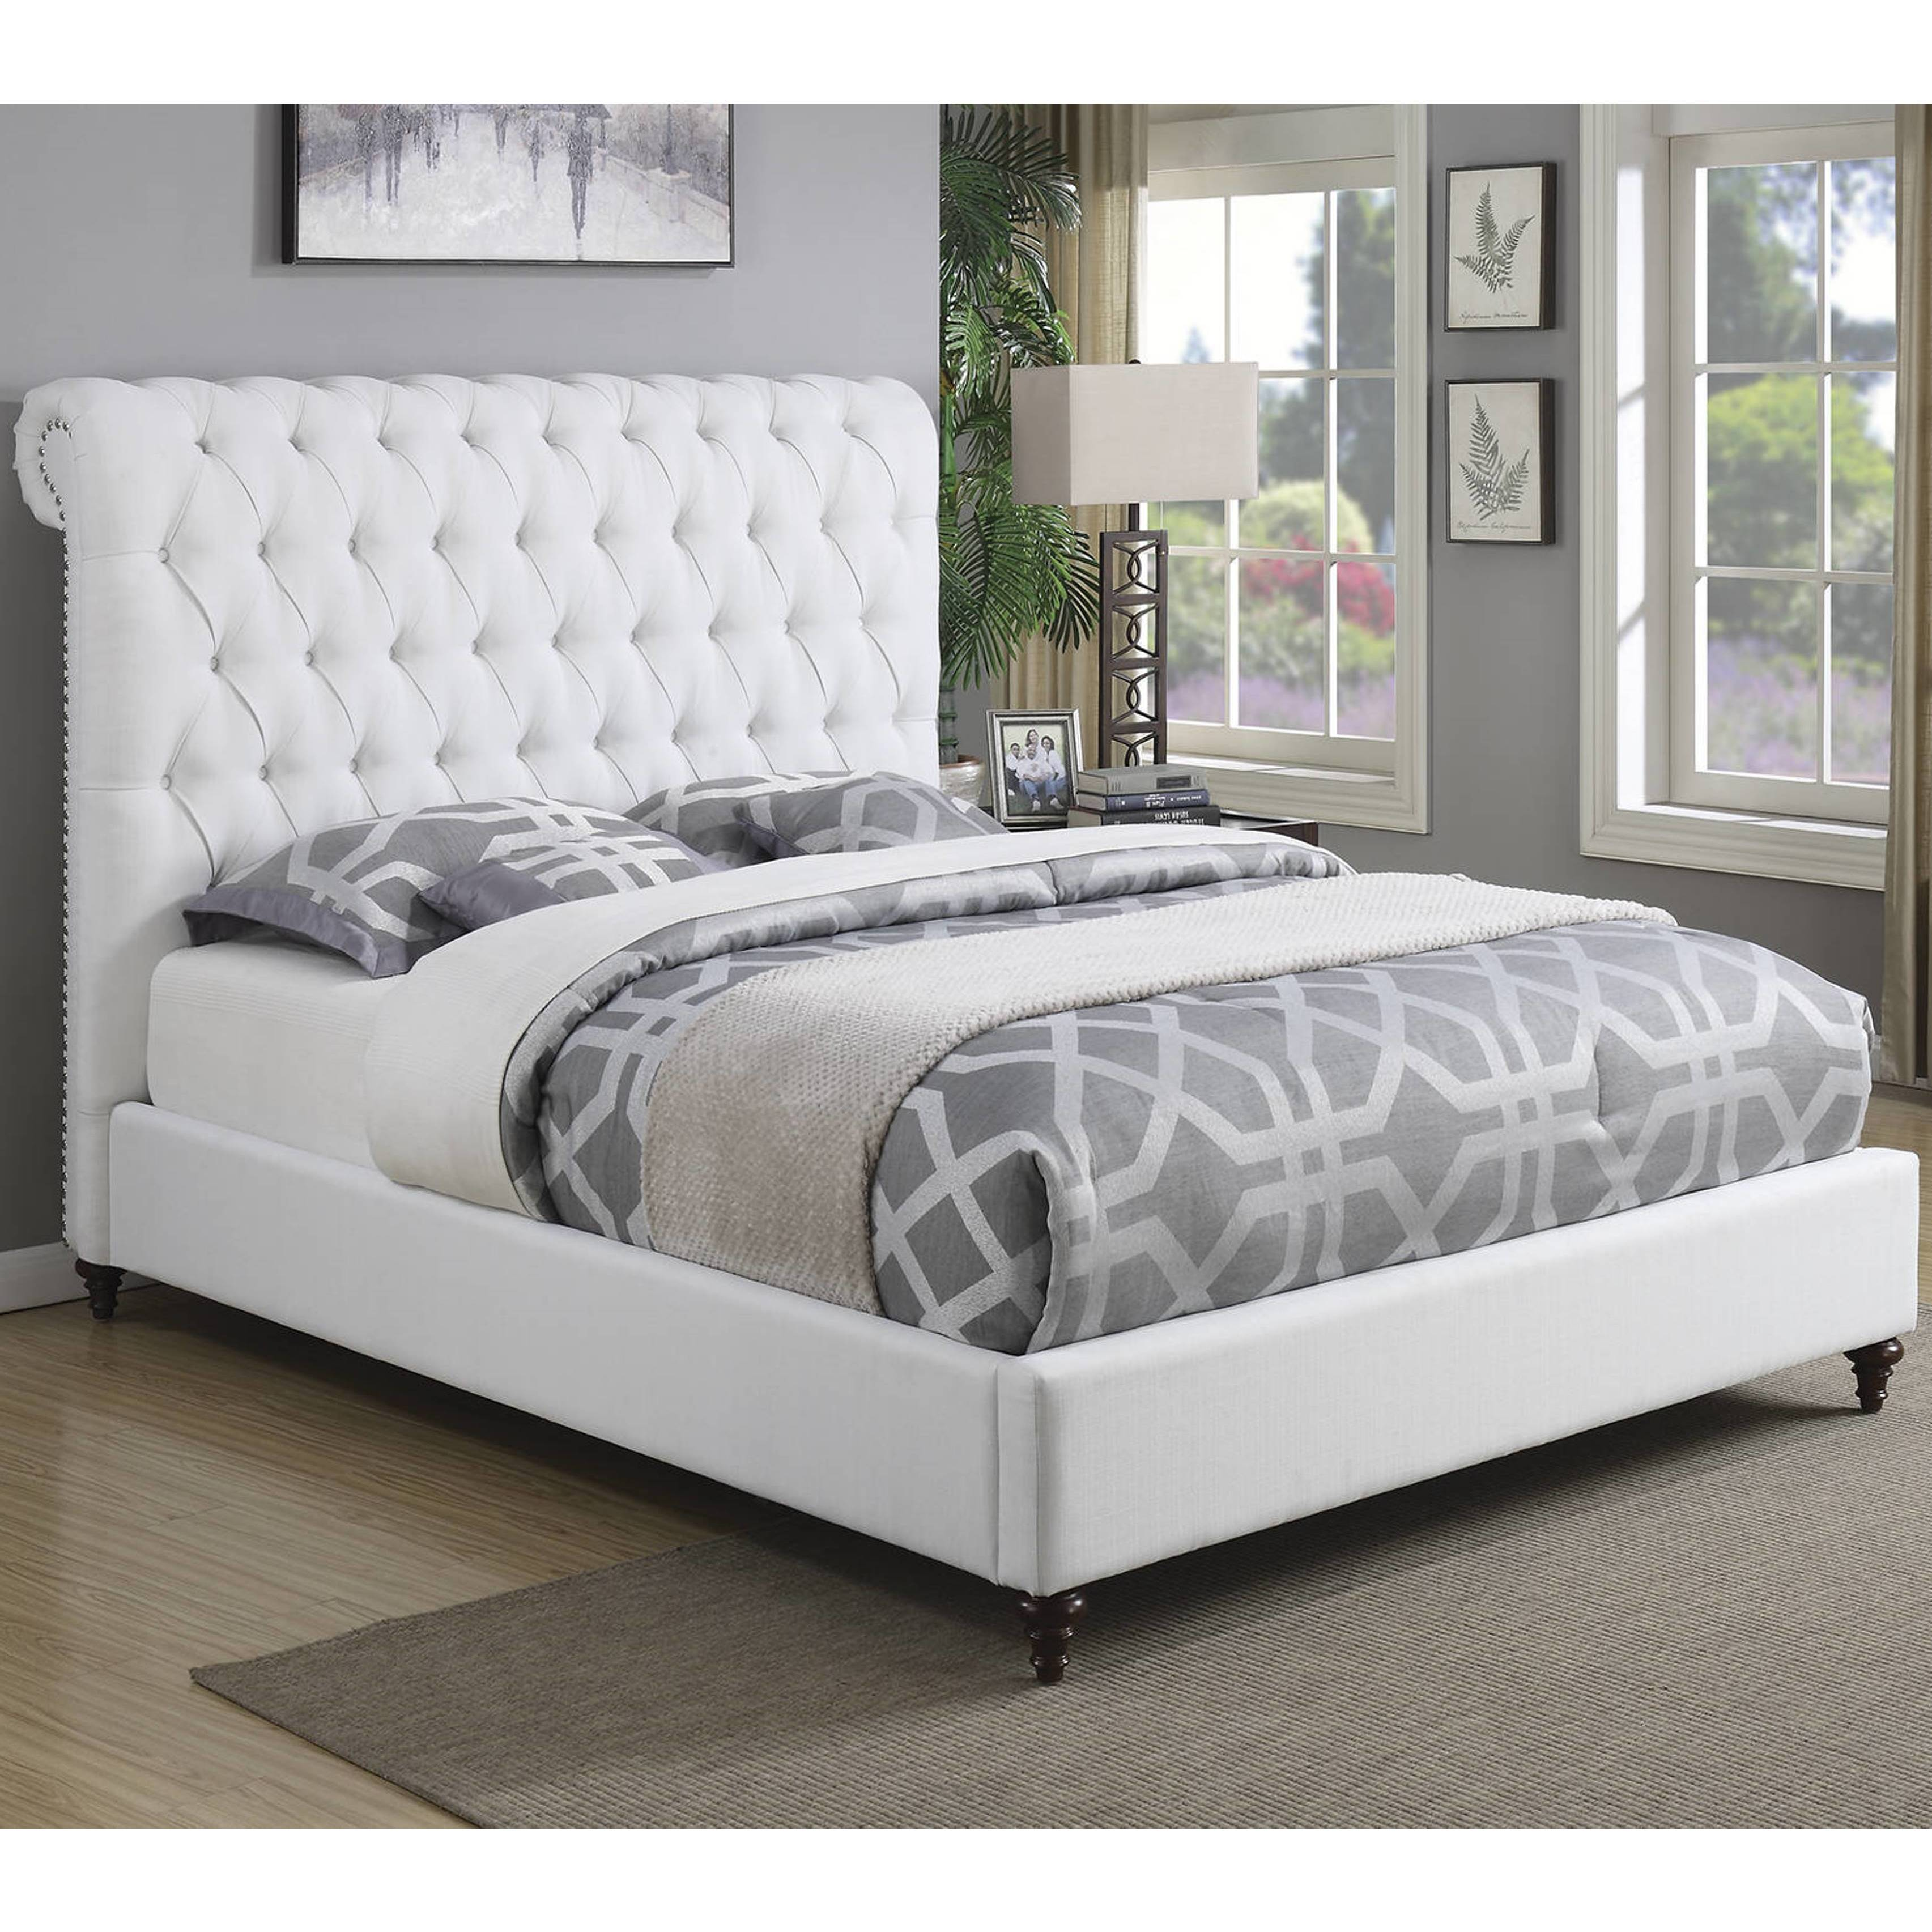 pinterest with make leather ideas s how new fashionable an us nailhead clever upholstered jensen to design ethan inspiration headboard allen trim stylish house